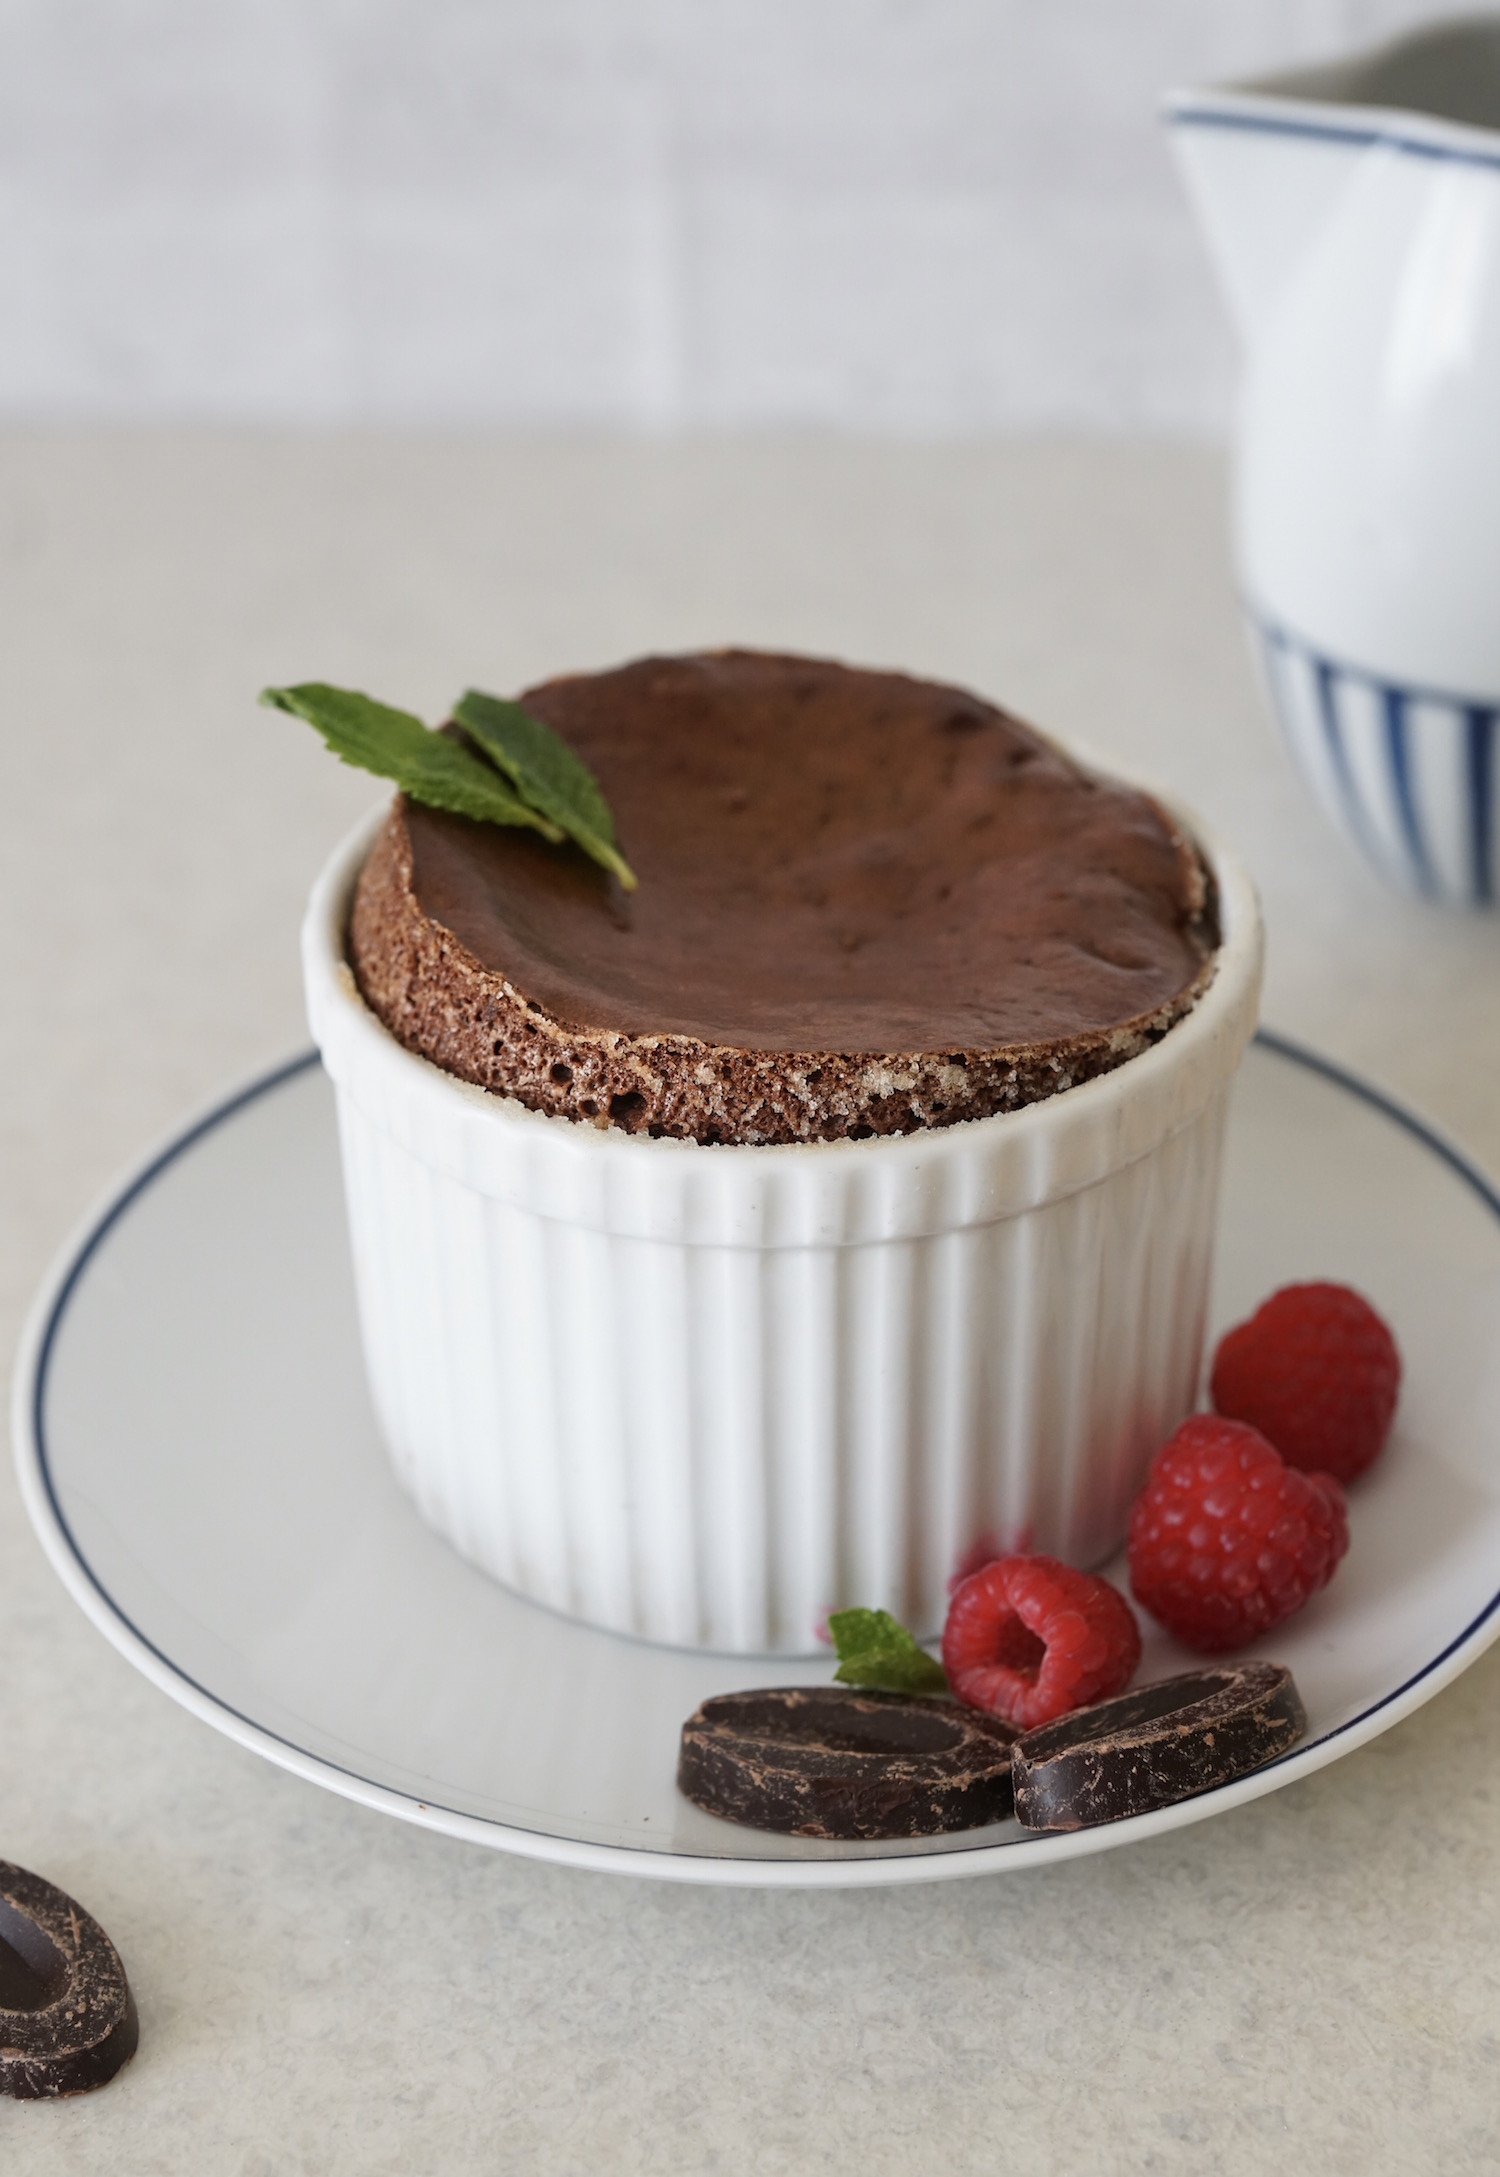 Flourless Paleo Chocolate Soufflé (Dairy & Gluten Free) a healthy, no fail version of this classic, indulgent dessert